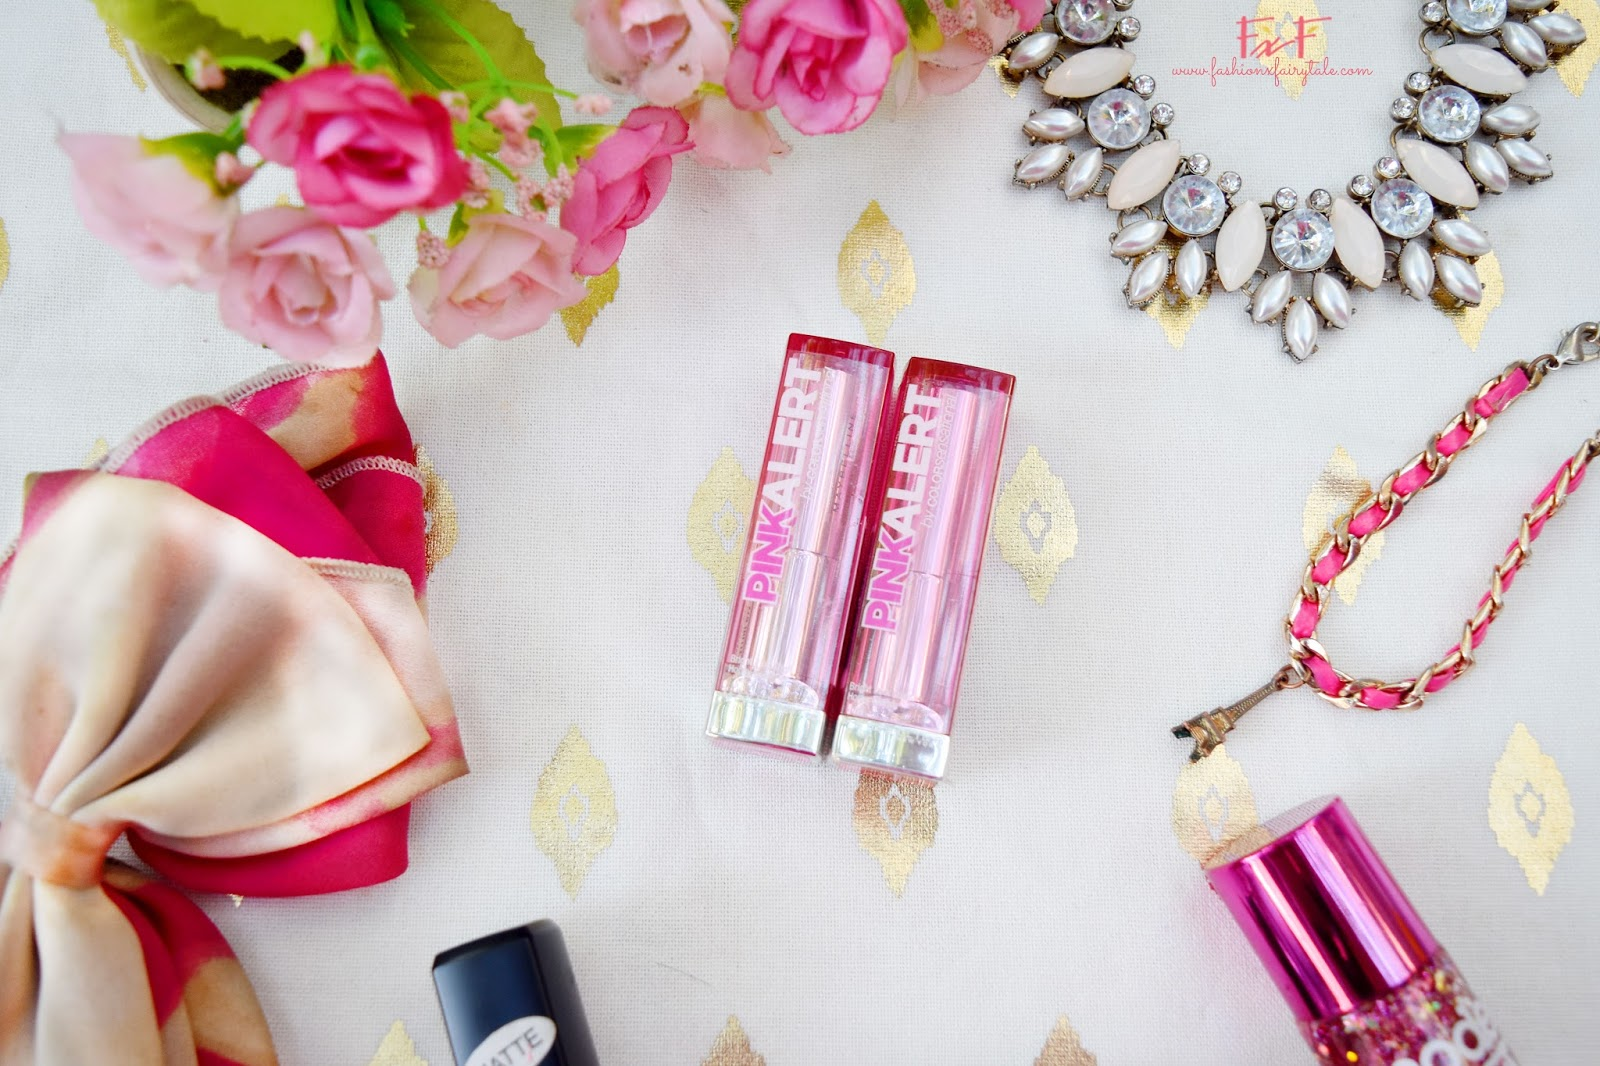 Maybelline Color Sensational Pink Alert Lipstick in POW3 & POW4 | Review & Swatches